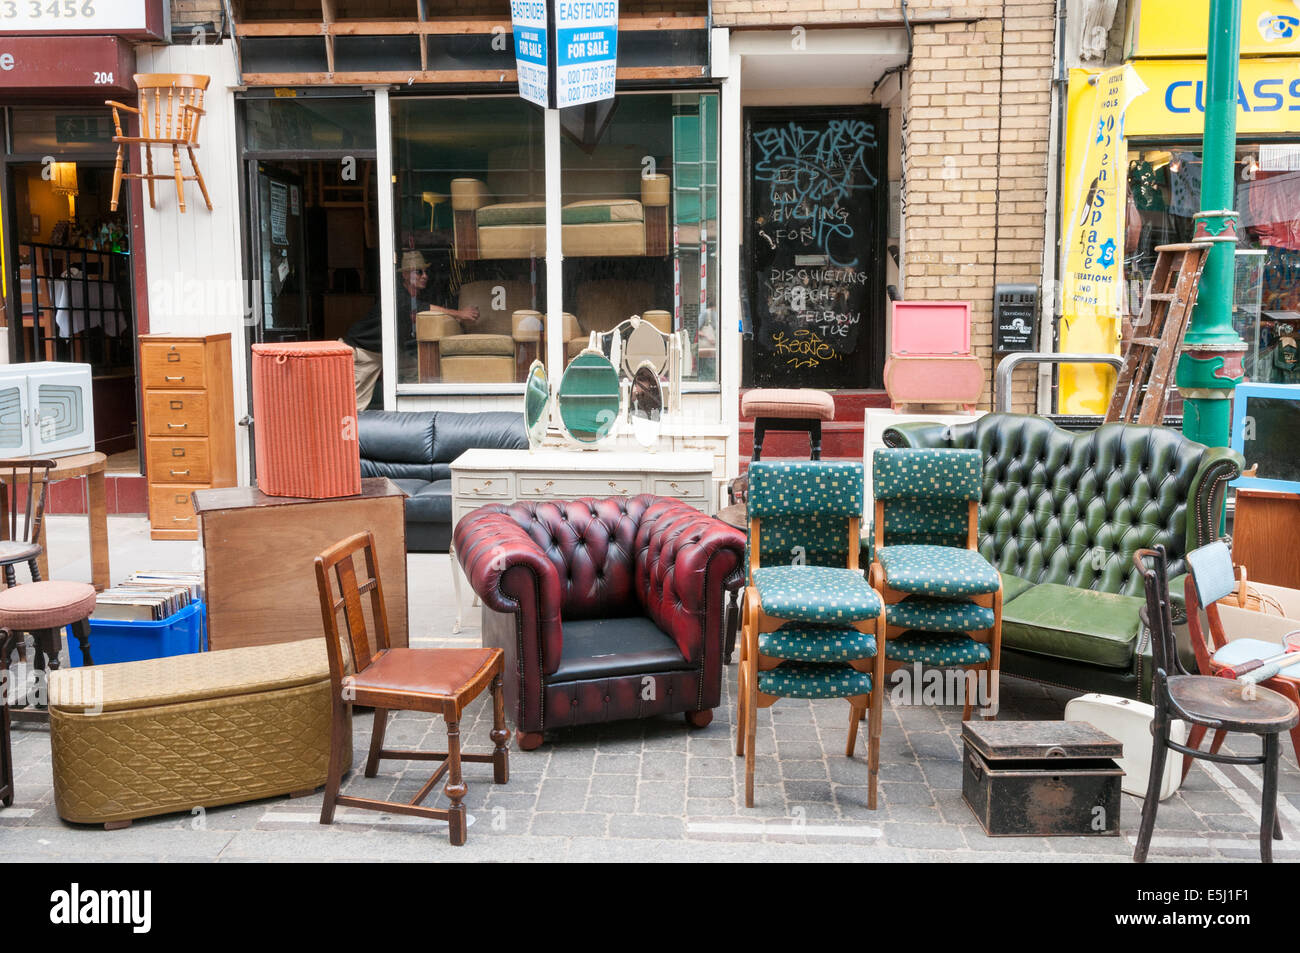 second hand used furniture for sale on brick lane tower hamlets